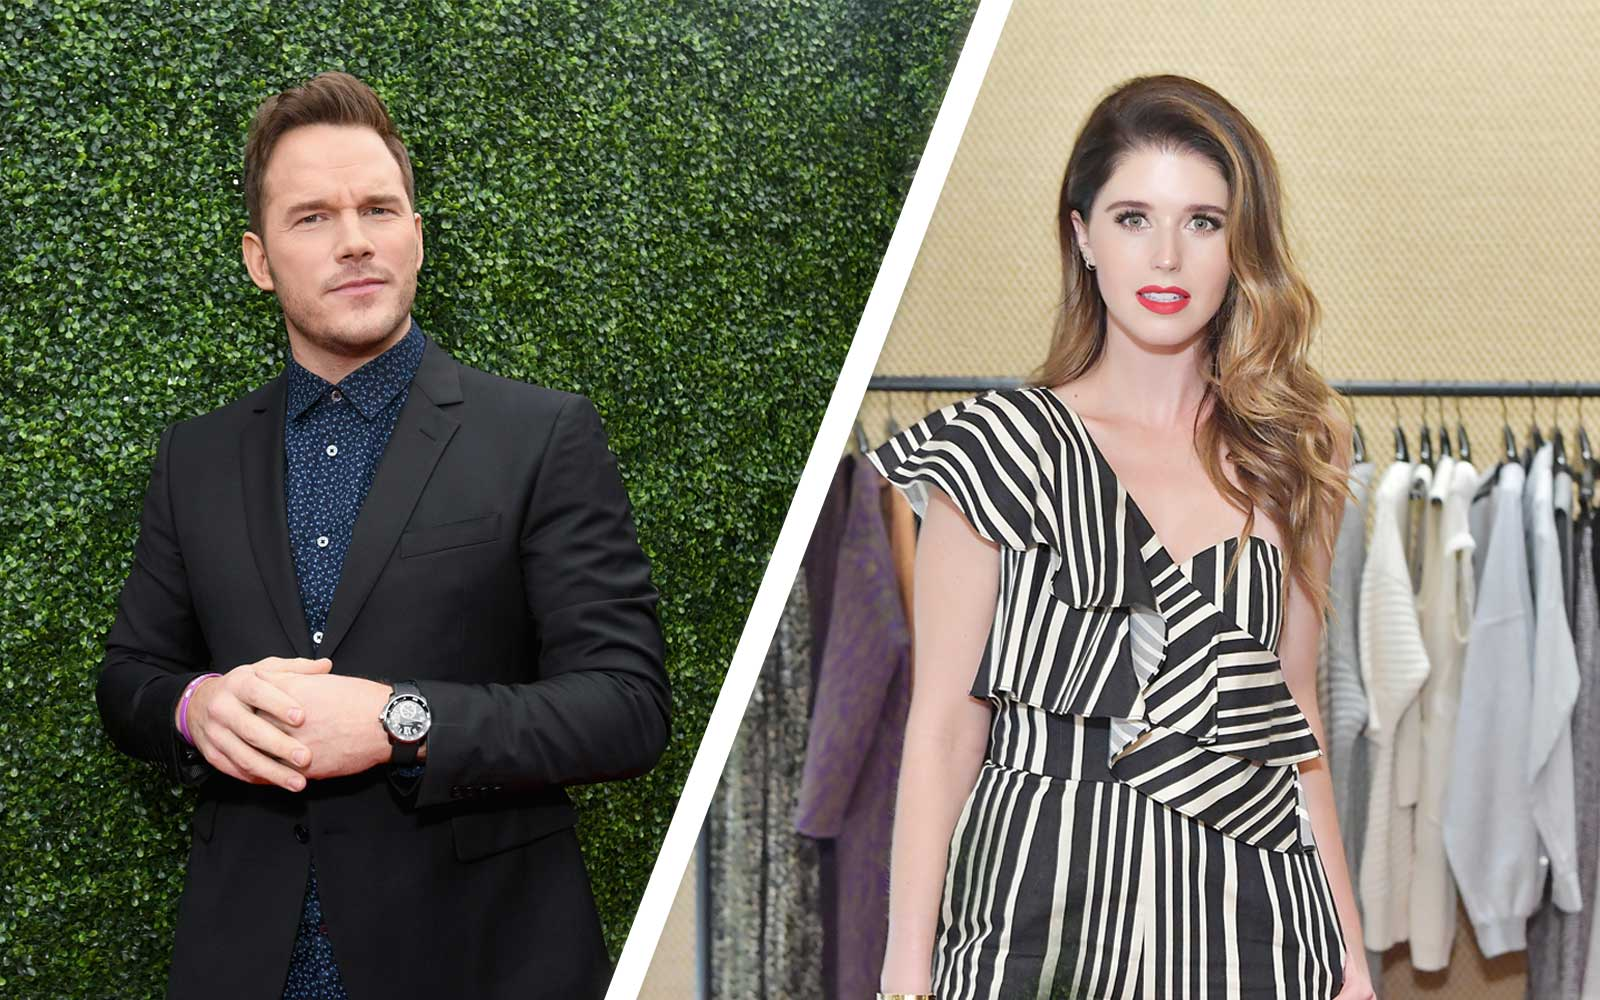 Chris Pratt and New Girlfriend Katherine Schwarzenegger Are All Smiles During Trip to Napa Winery